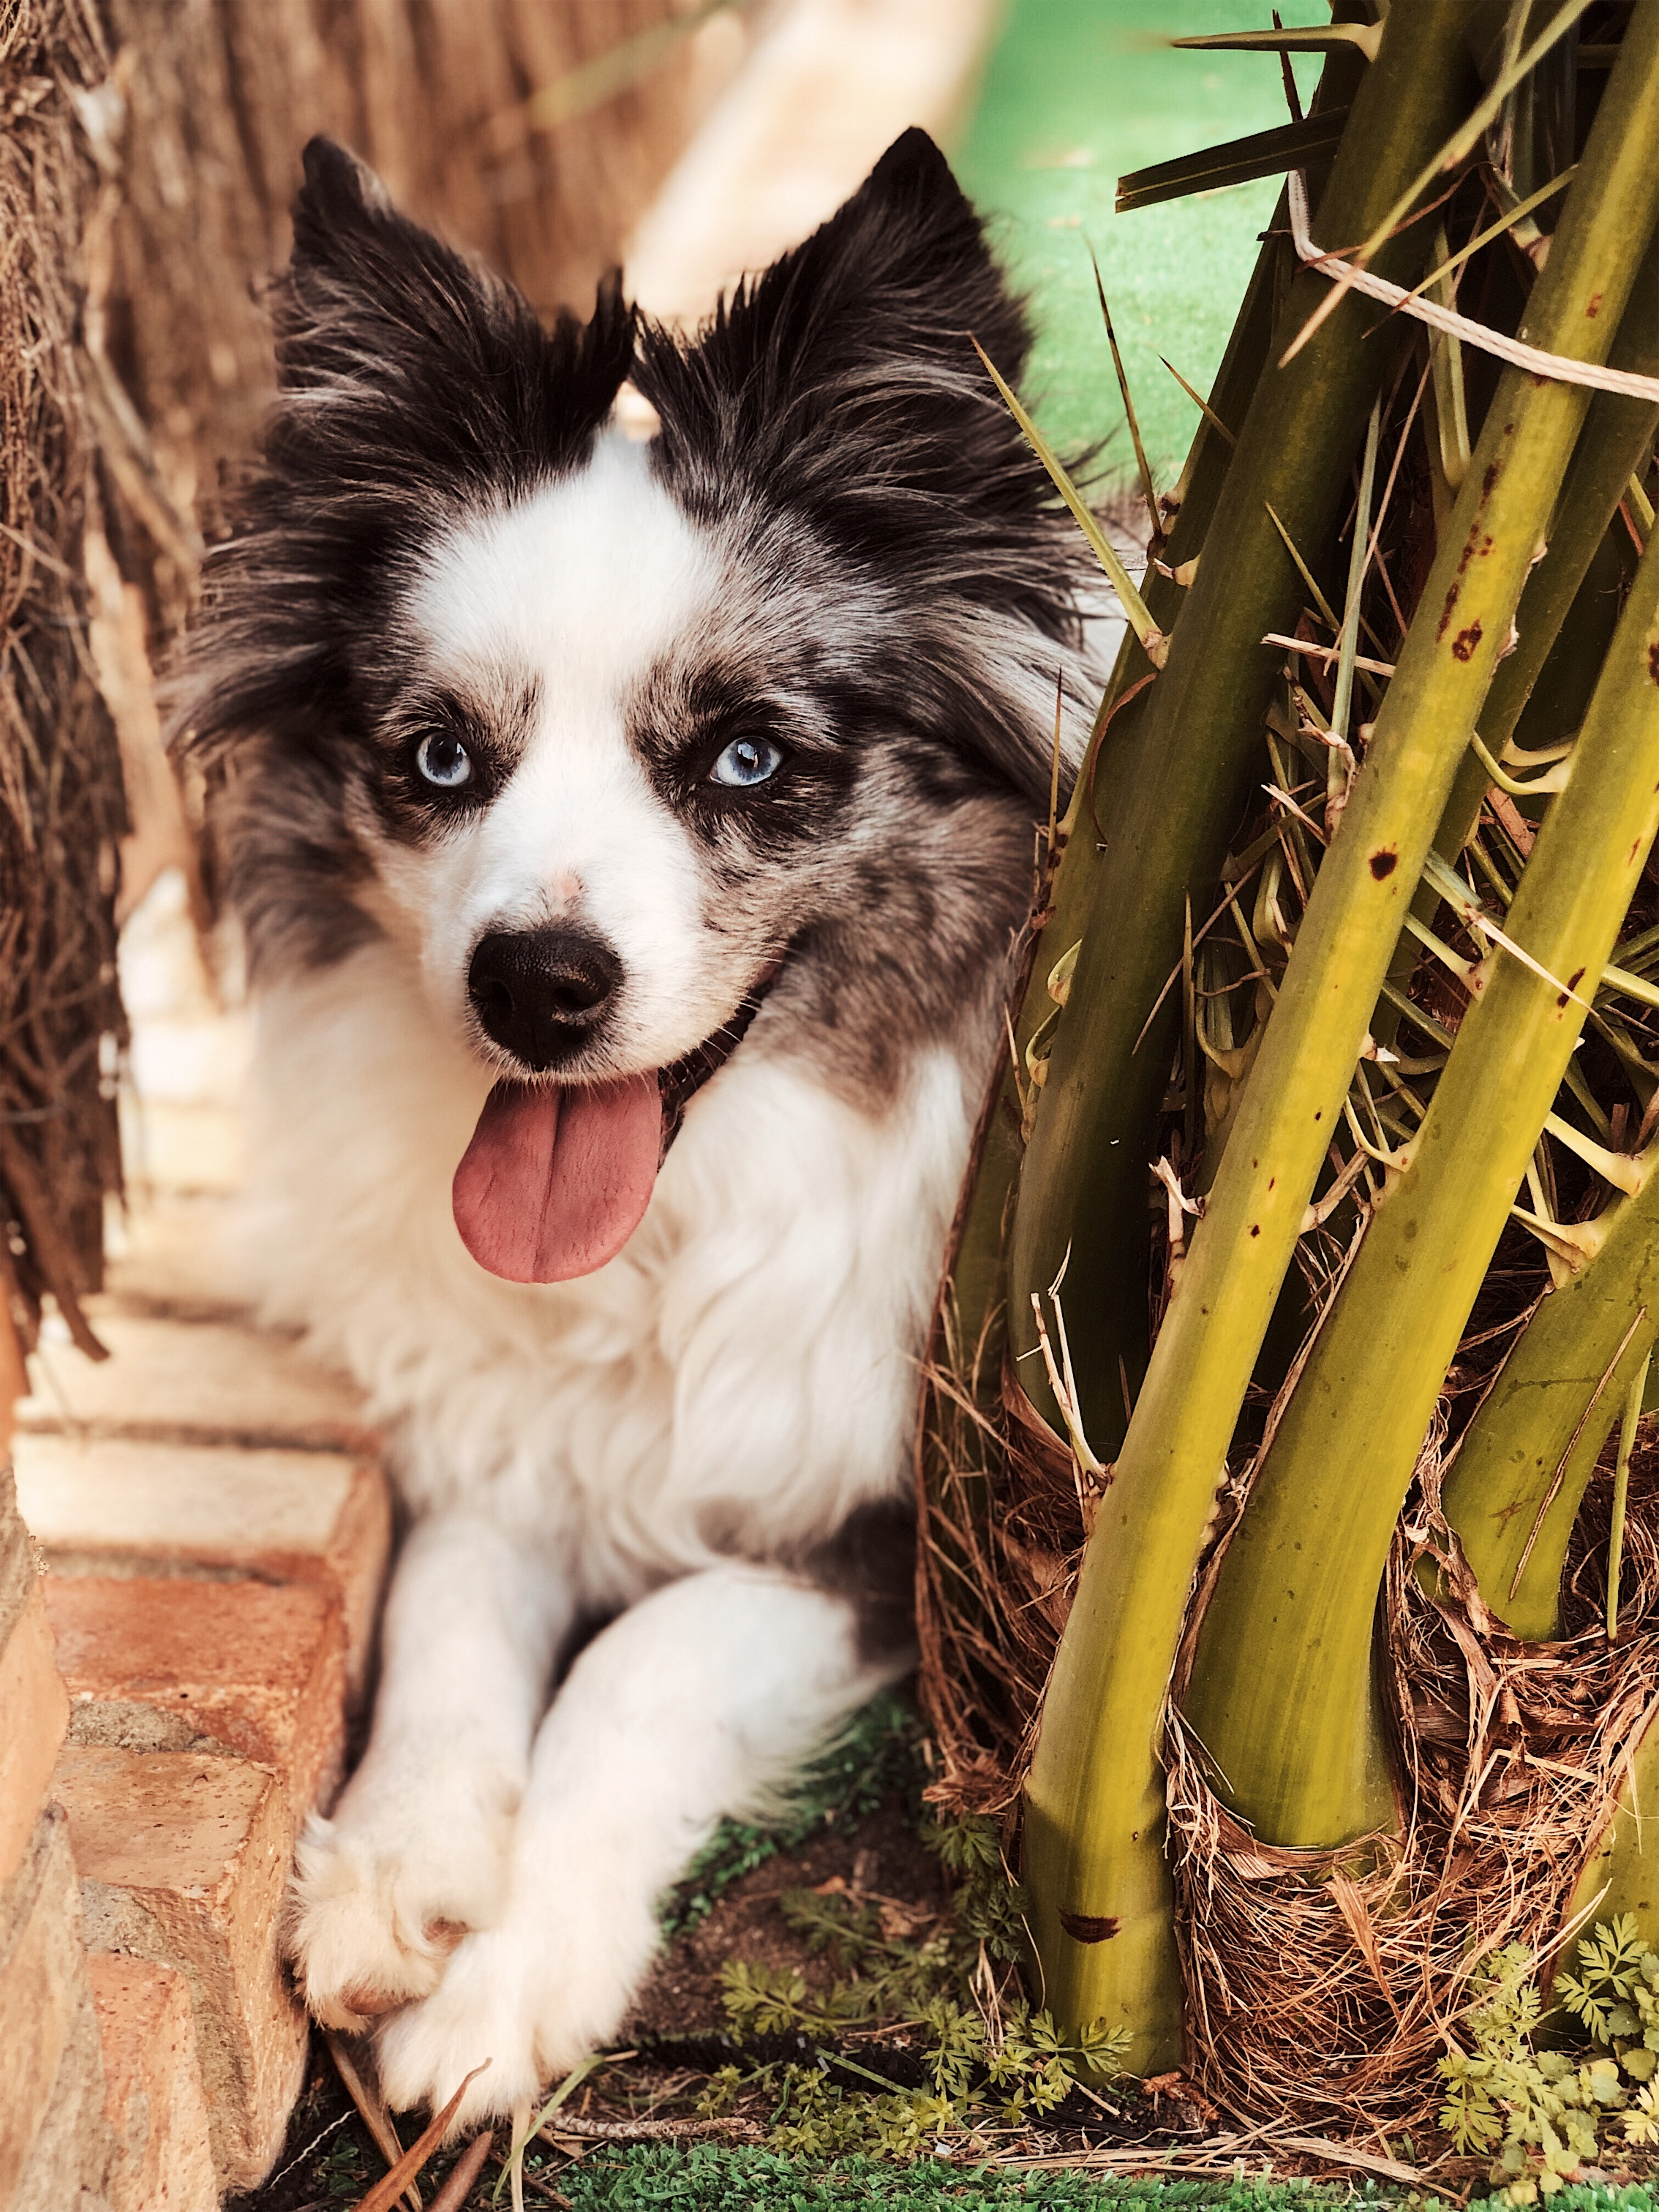 This is Coco, my blue merle toy Aussie shepherd. She now lives in Spain with my mom.